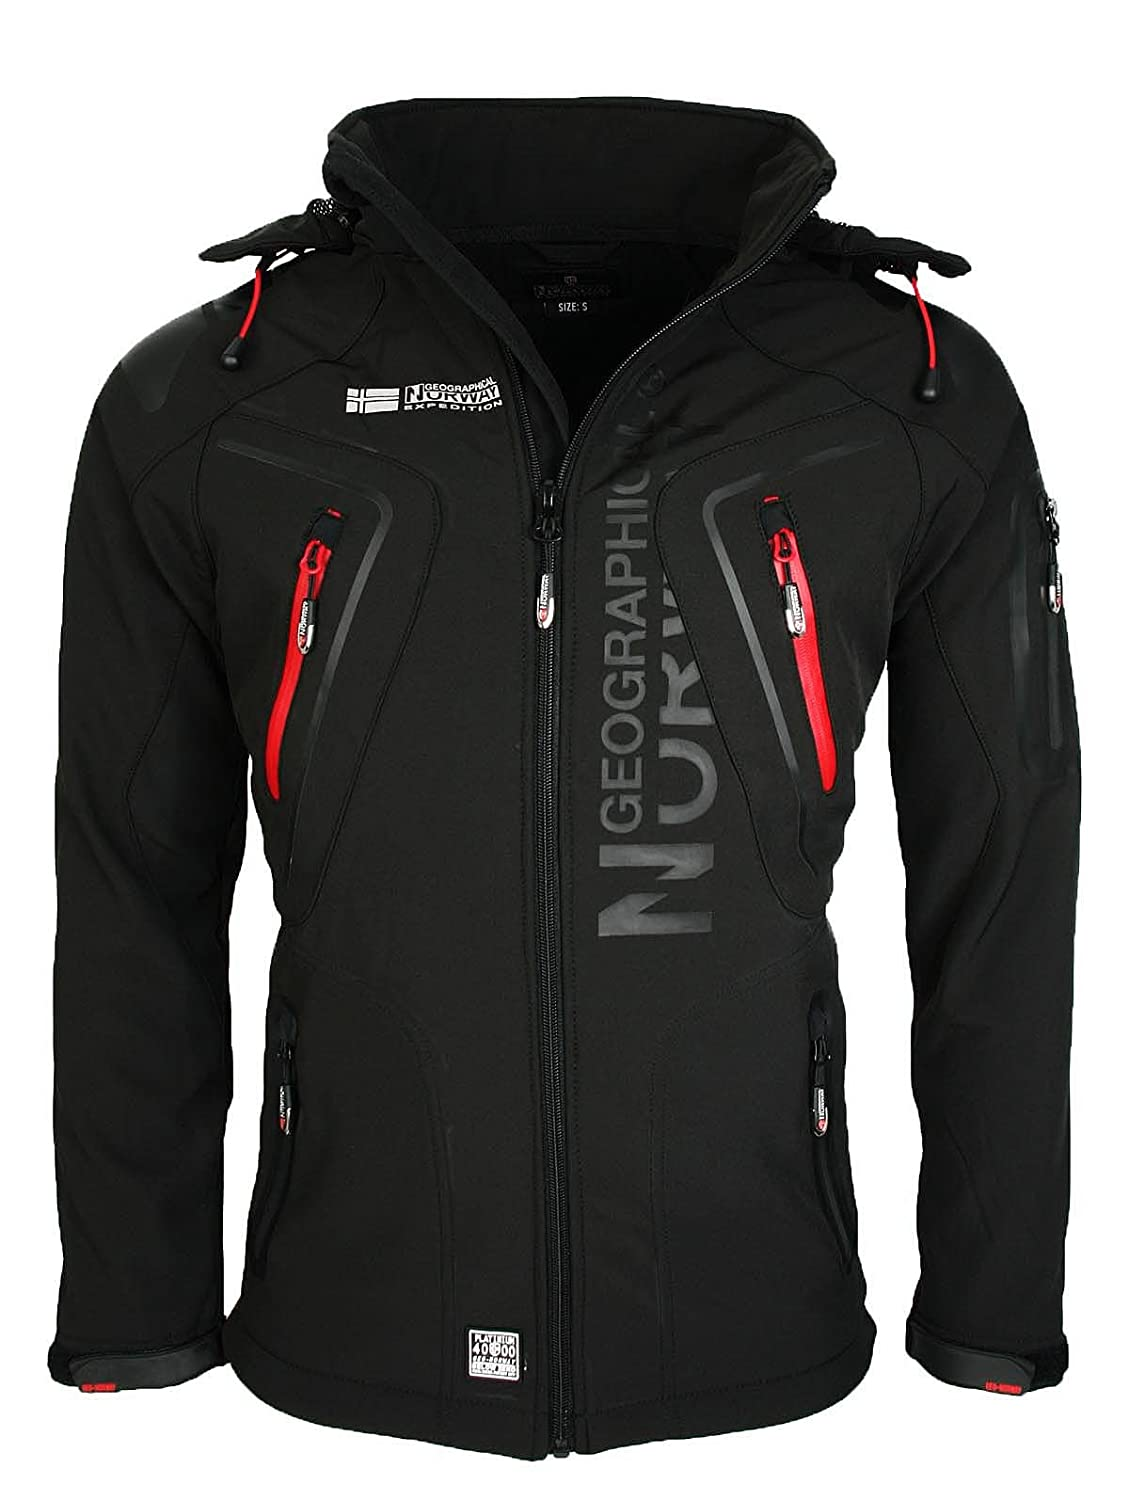 Noir M Geographical Norway Tambour Veste Softshell Homme